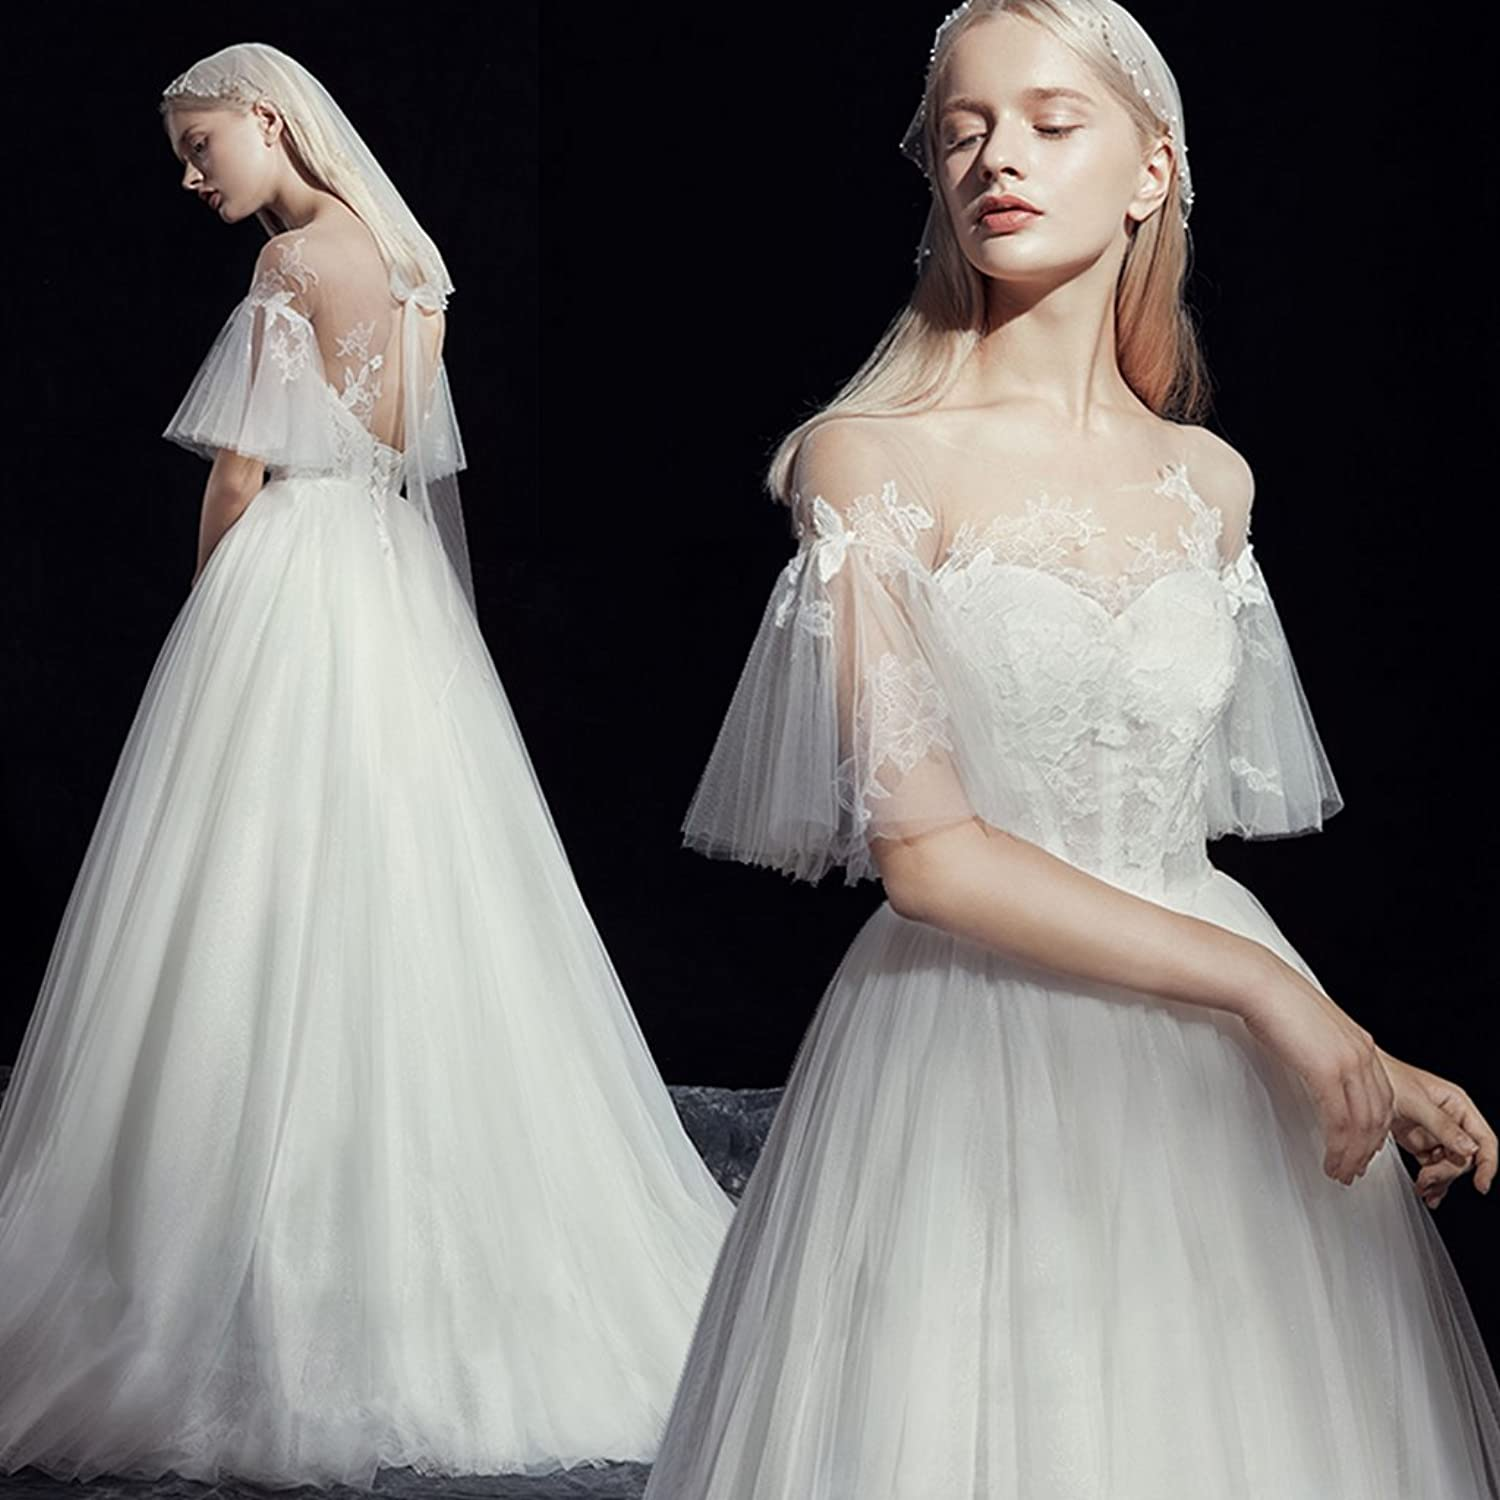 Fashion Simple Women's Wedding Dresses Tulle Princess Dream Floor Length Evening Prom Bridal Dresses with Lace Appliques